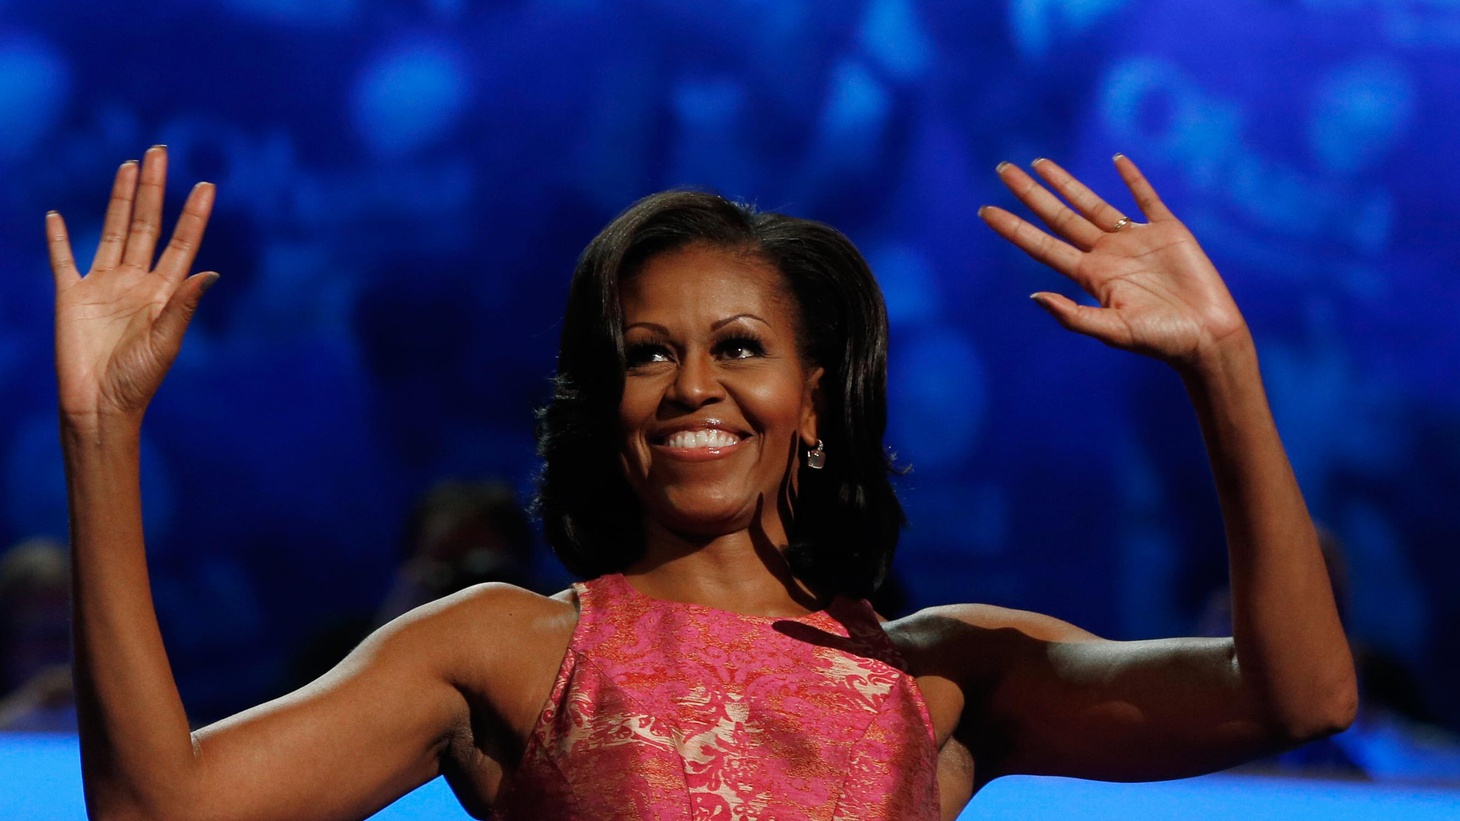 First Lady Michelle Obama got the spotlight last night and brought down a house full of more than 5000 delegates. We hear highlights and hear what's up for tonight.